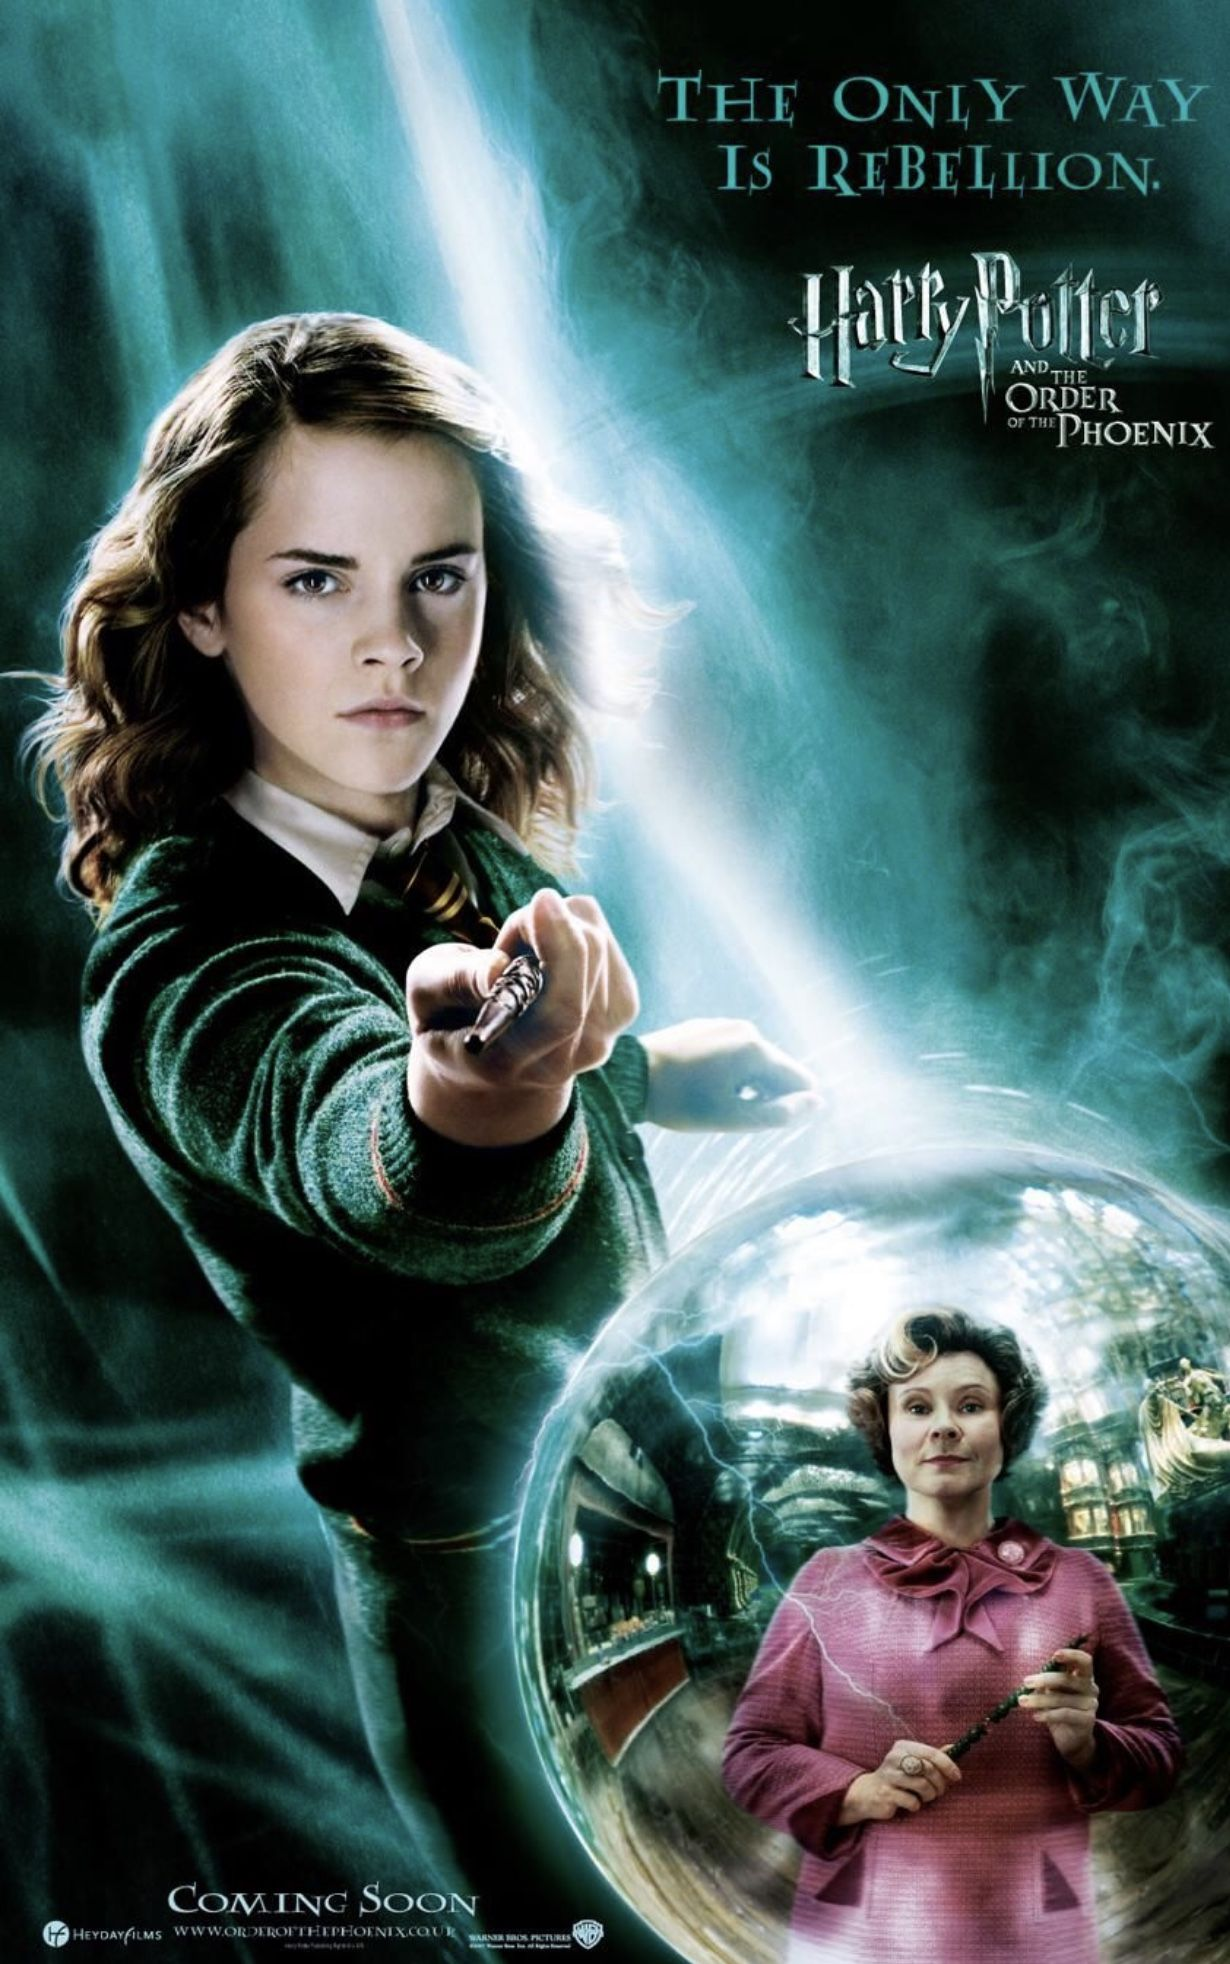 Harry Potter And The Order Of The Phoenix 2007 Harry Potter Movie Posters Harry Potter Movies Phoenix Harry Potter